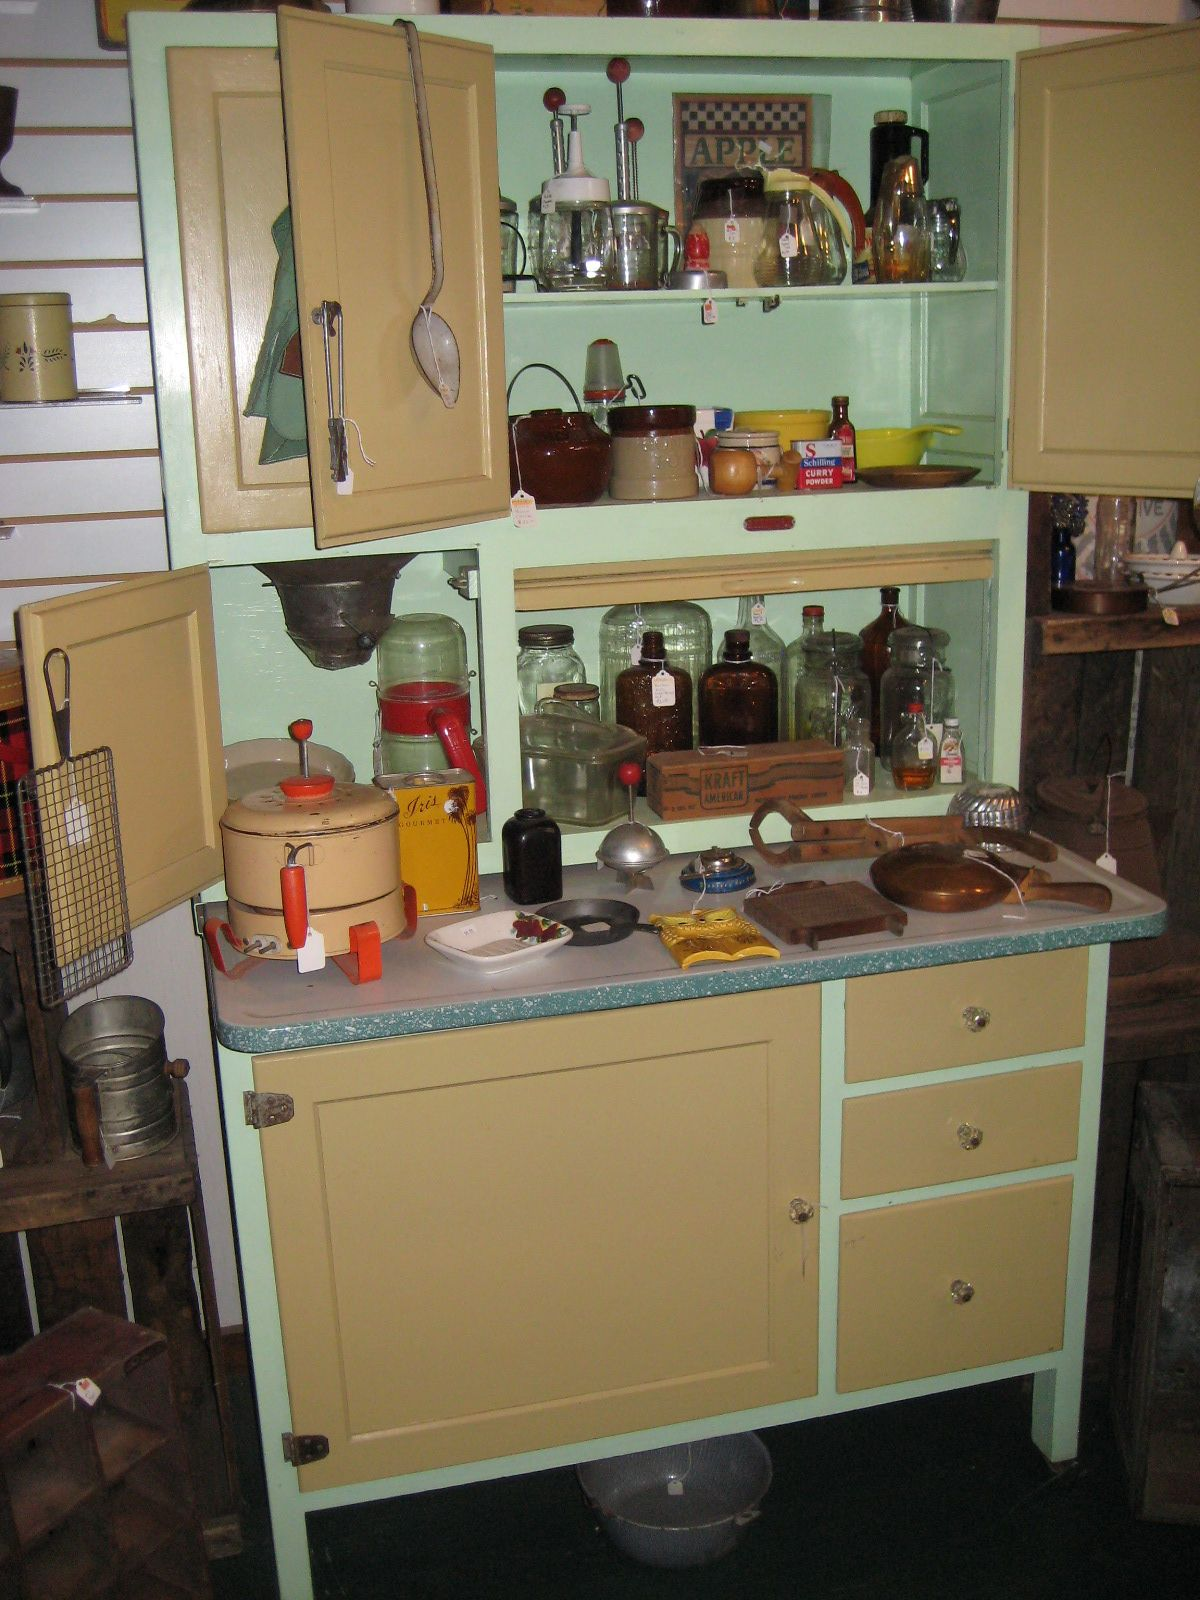 Vintage Baking Cabinet With Built In Flour Sifter Vintage Kitchen Cabinets Kitchen Design Small Kitchen Design